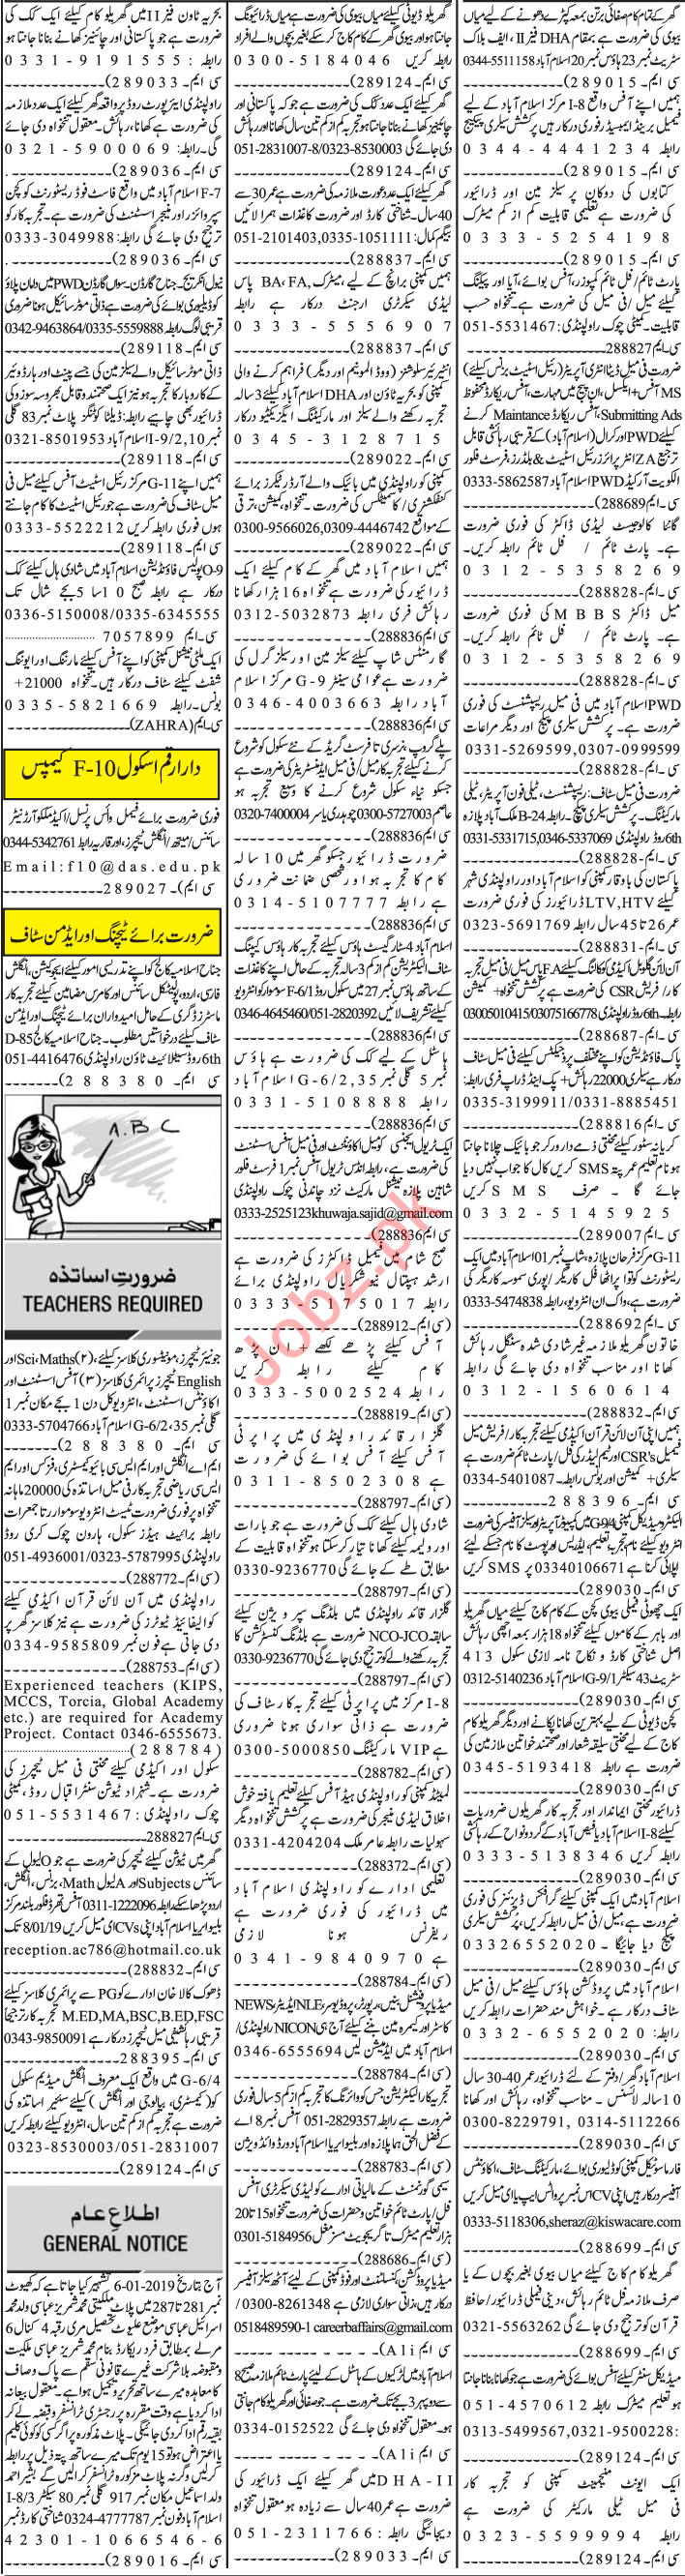 Jang Sunday Classified Ads 6th Jan 2019 for General Staff